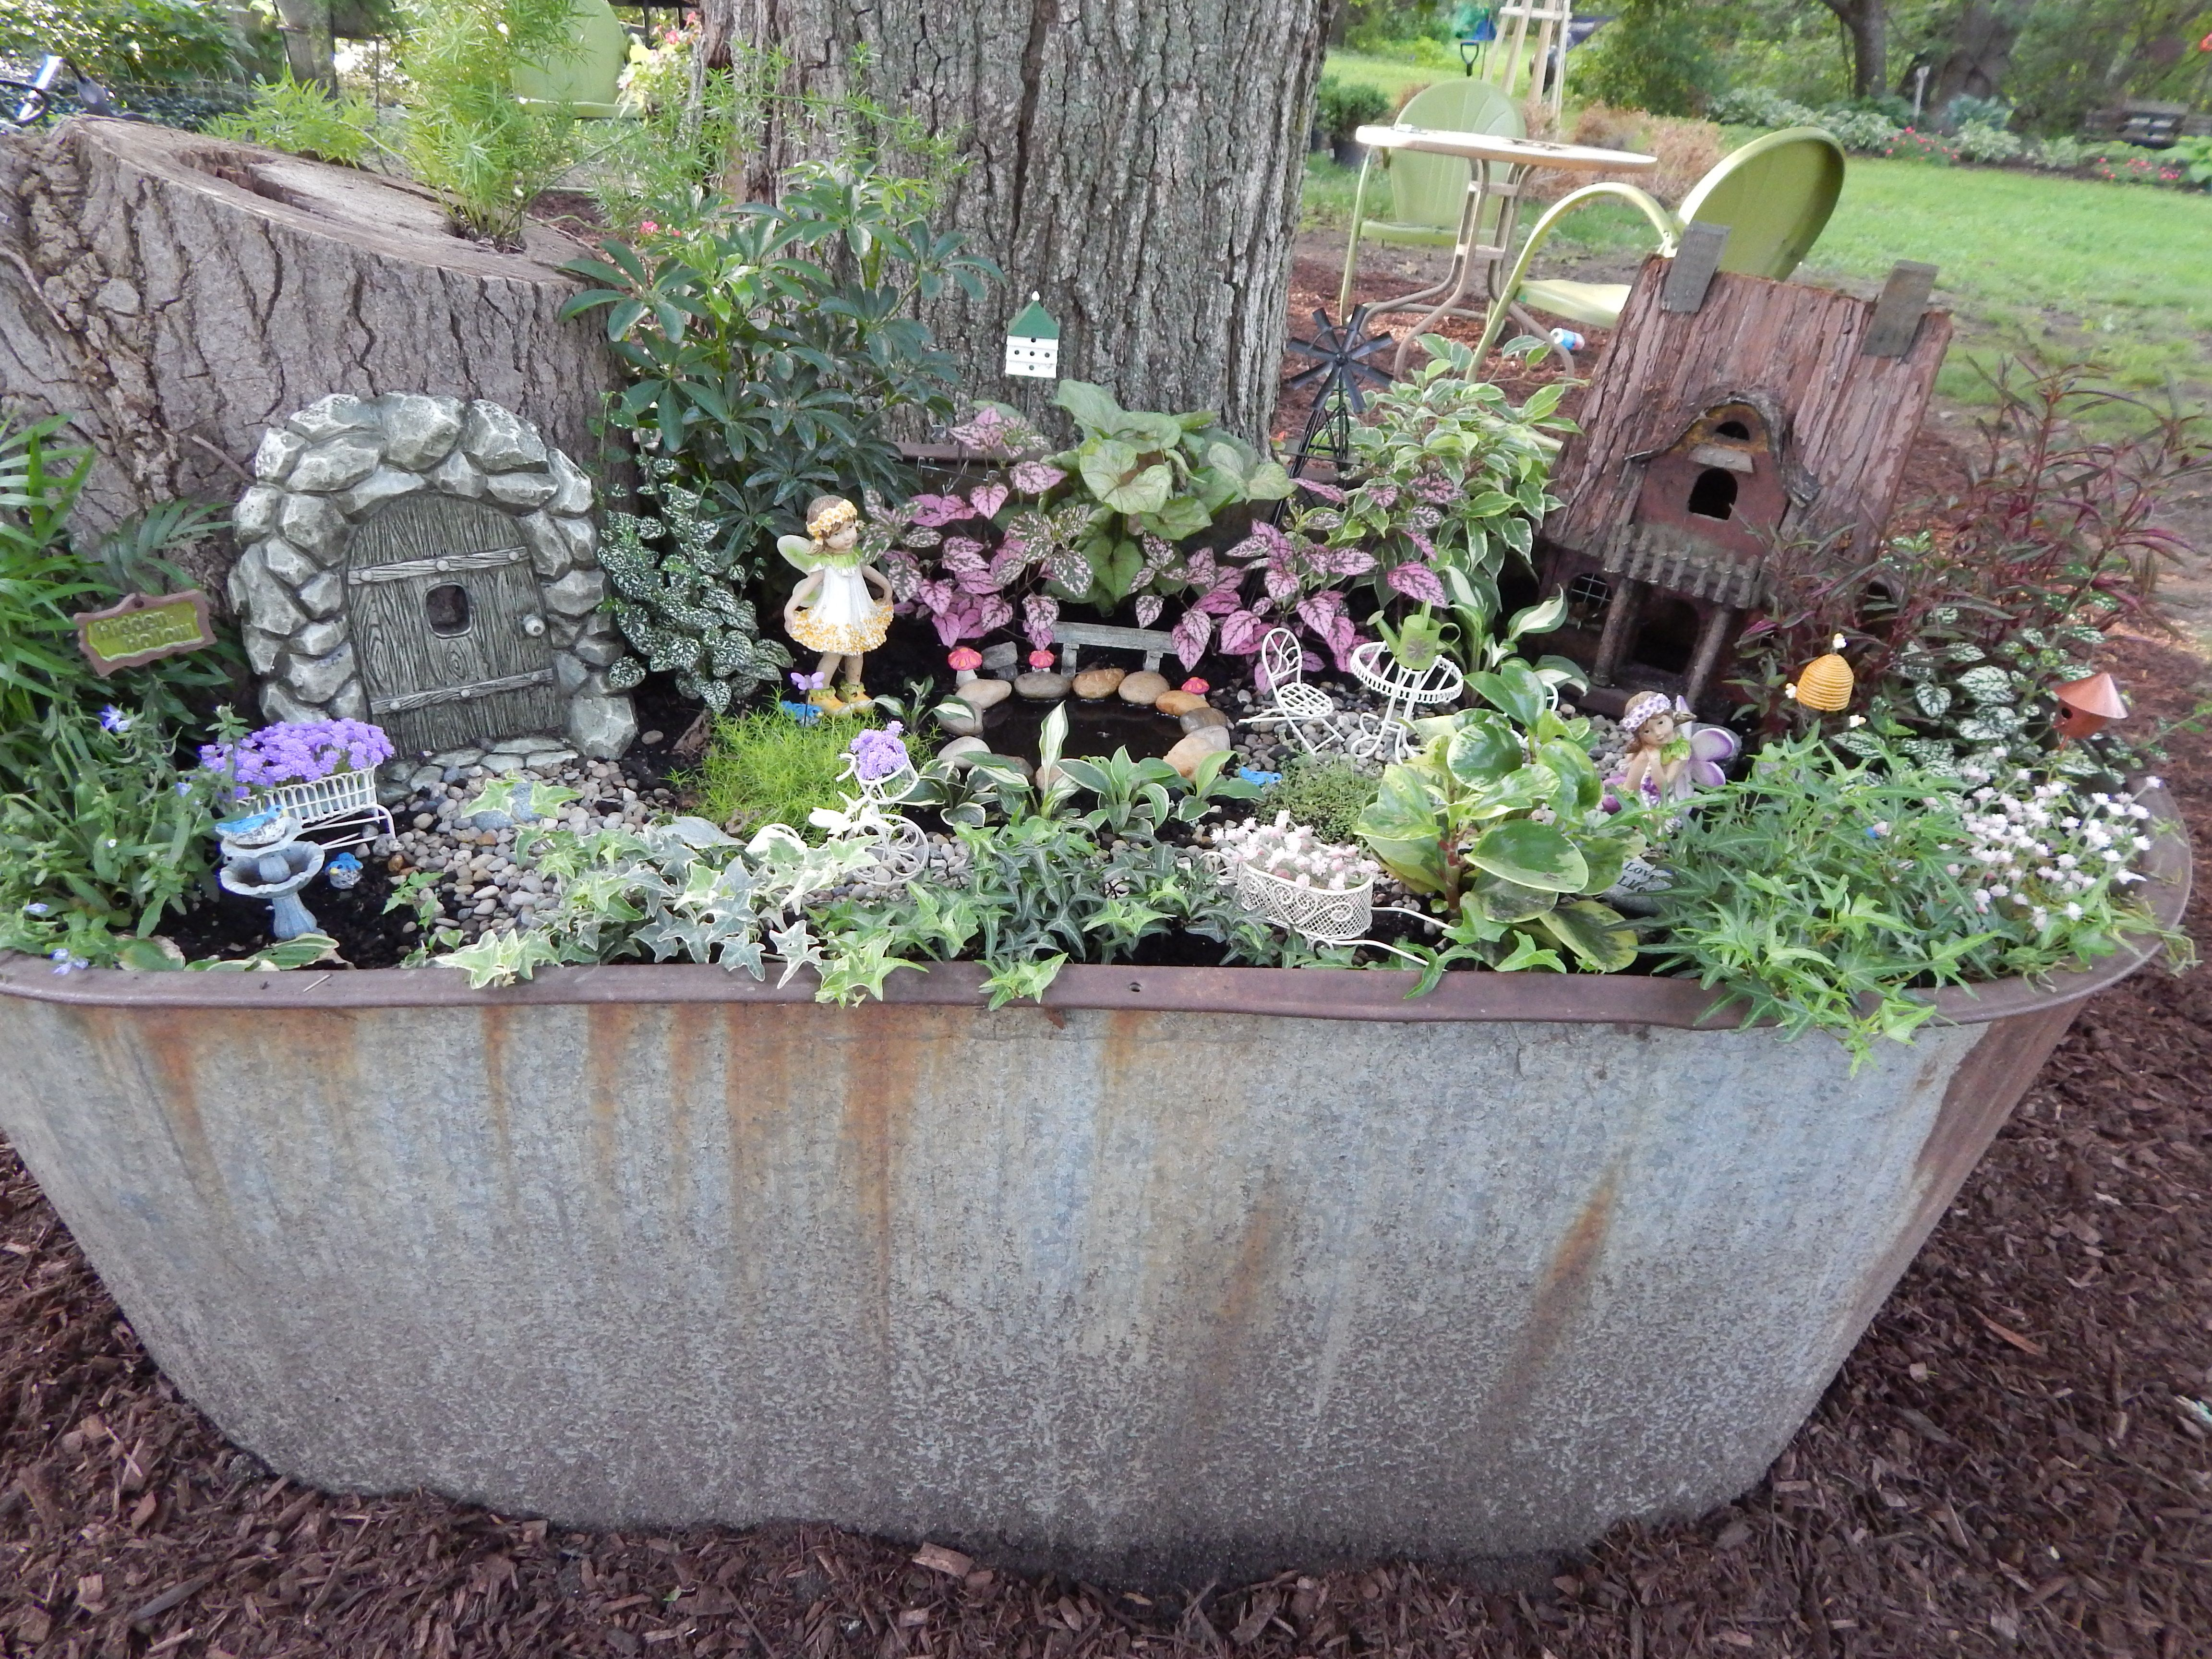 My Fairy Garden Made In An Old Horse Trough.Found An Old Log And Made